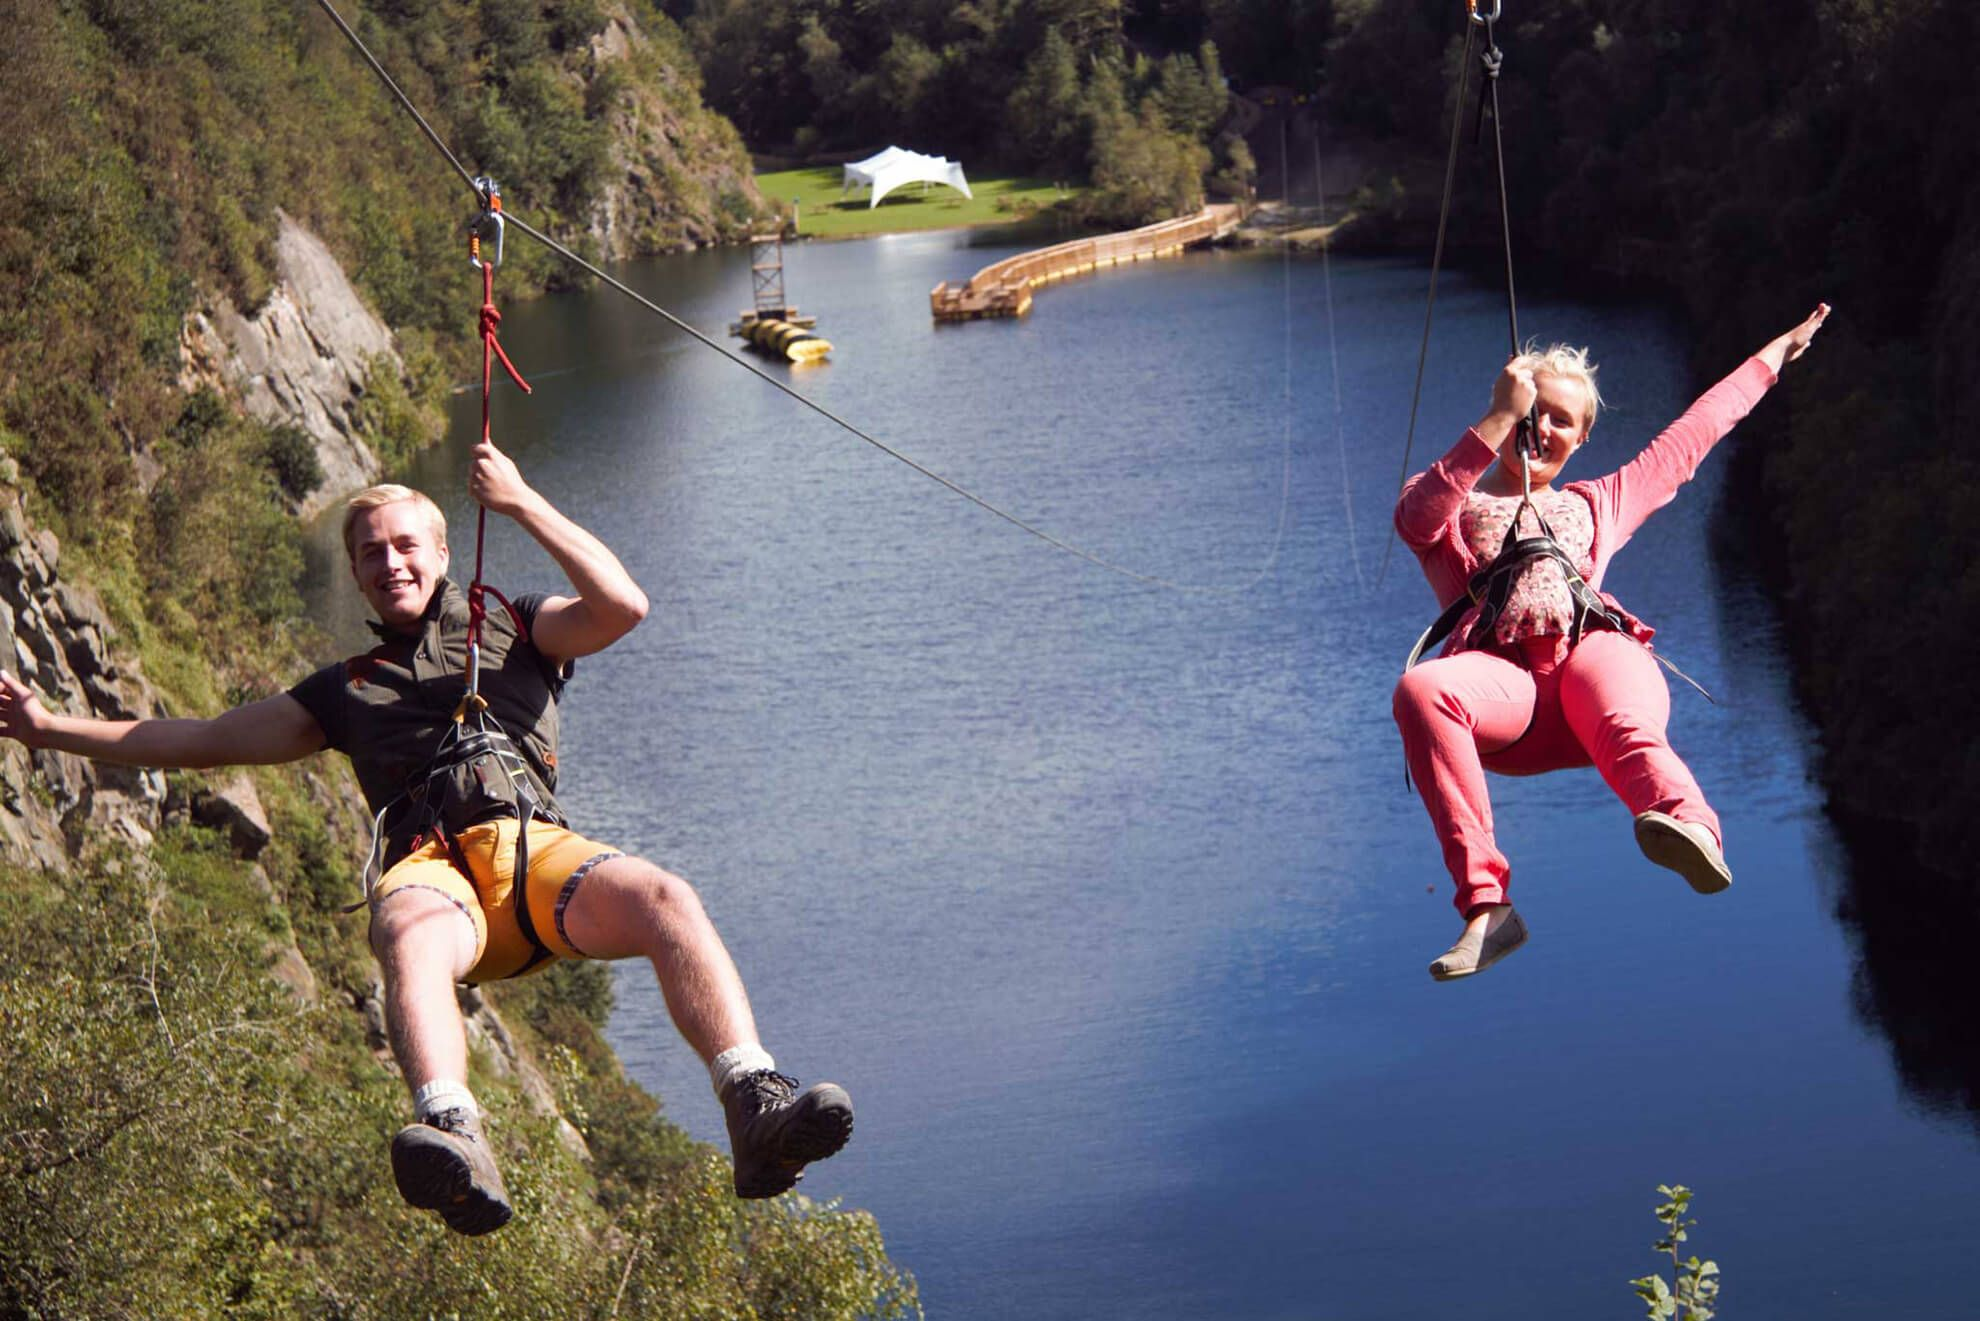 The UK's longest zip wire at Adrenalin Quarry near Liskeard